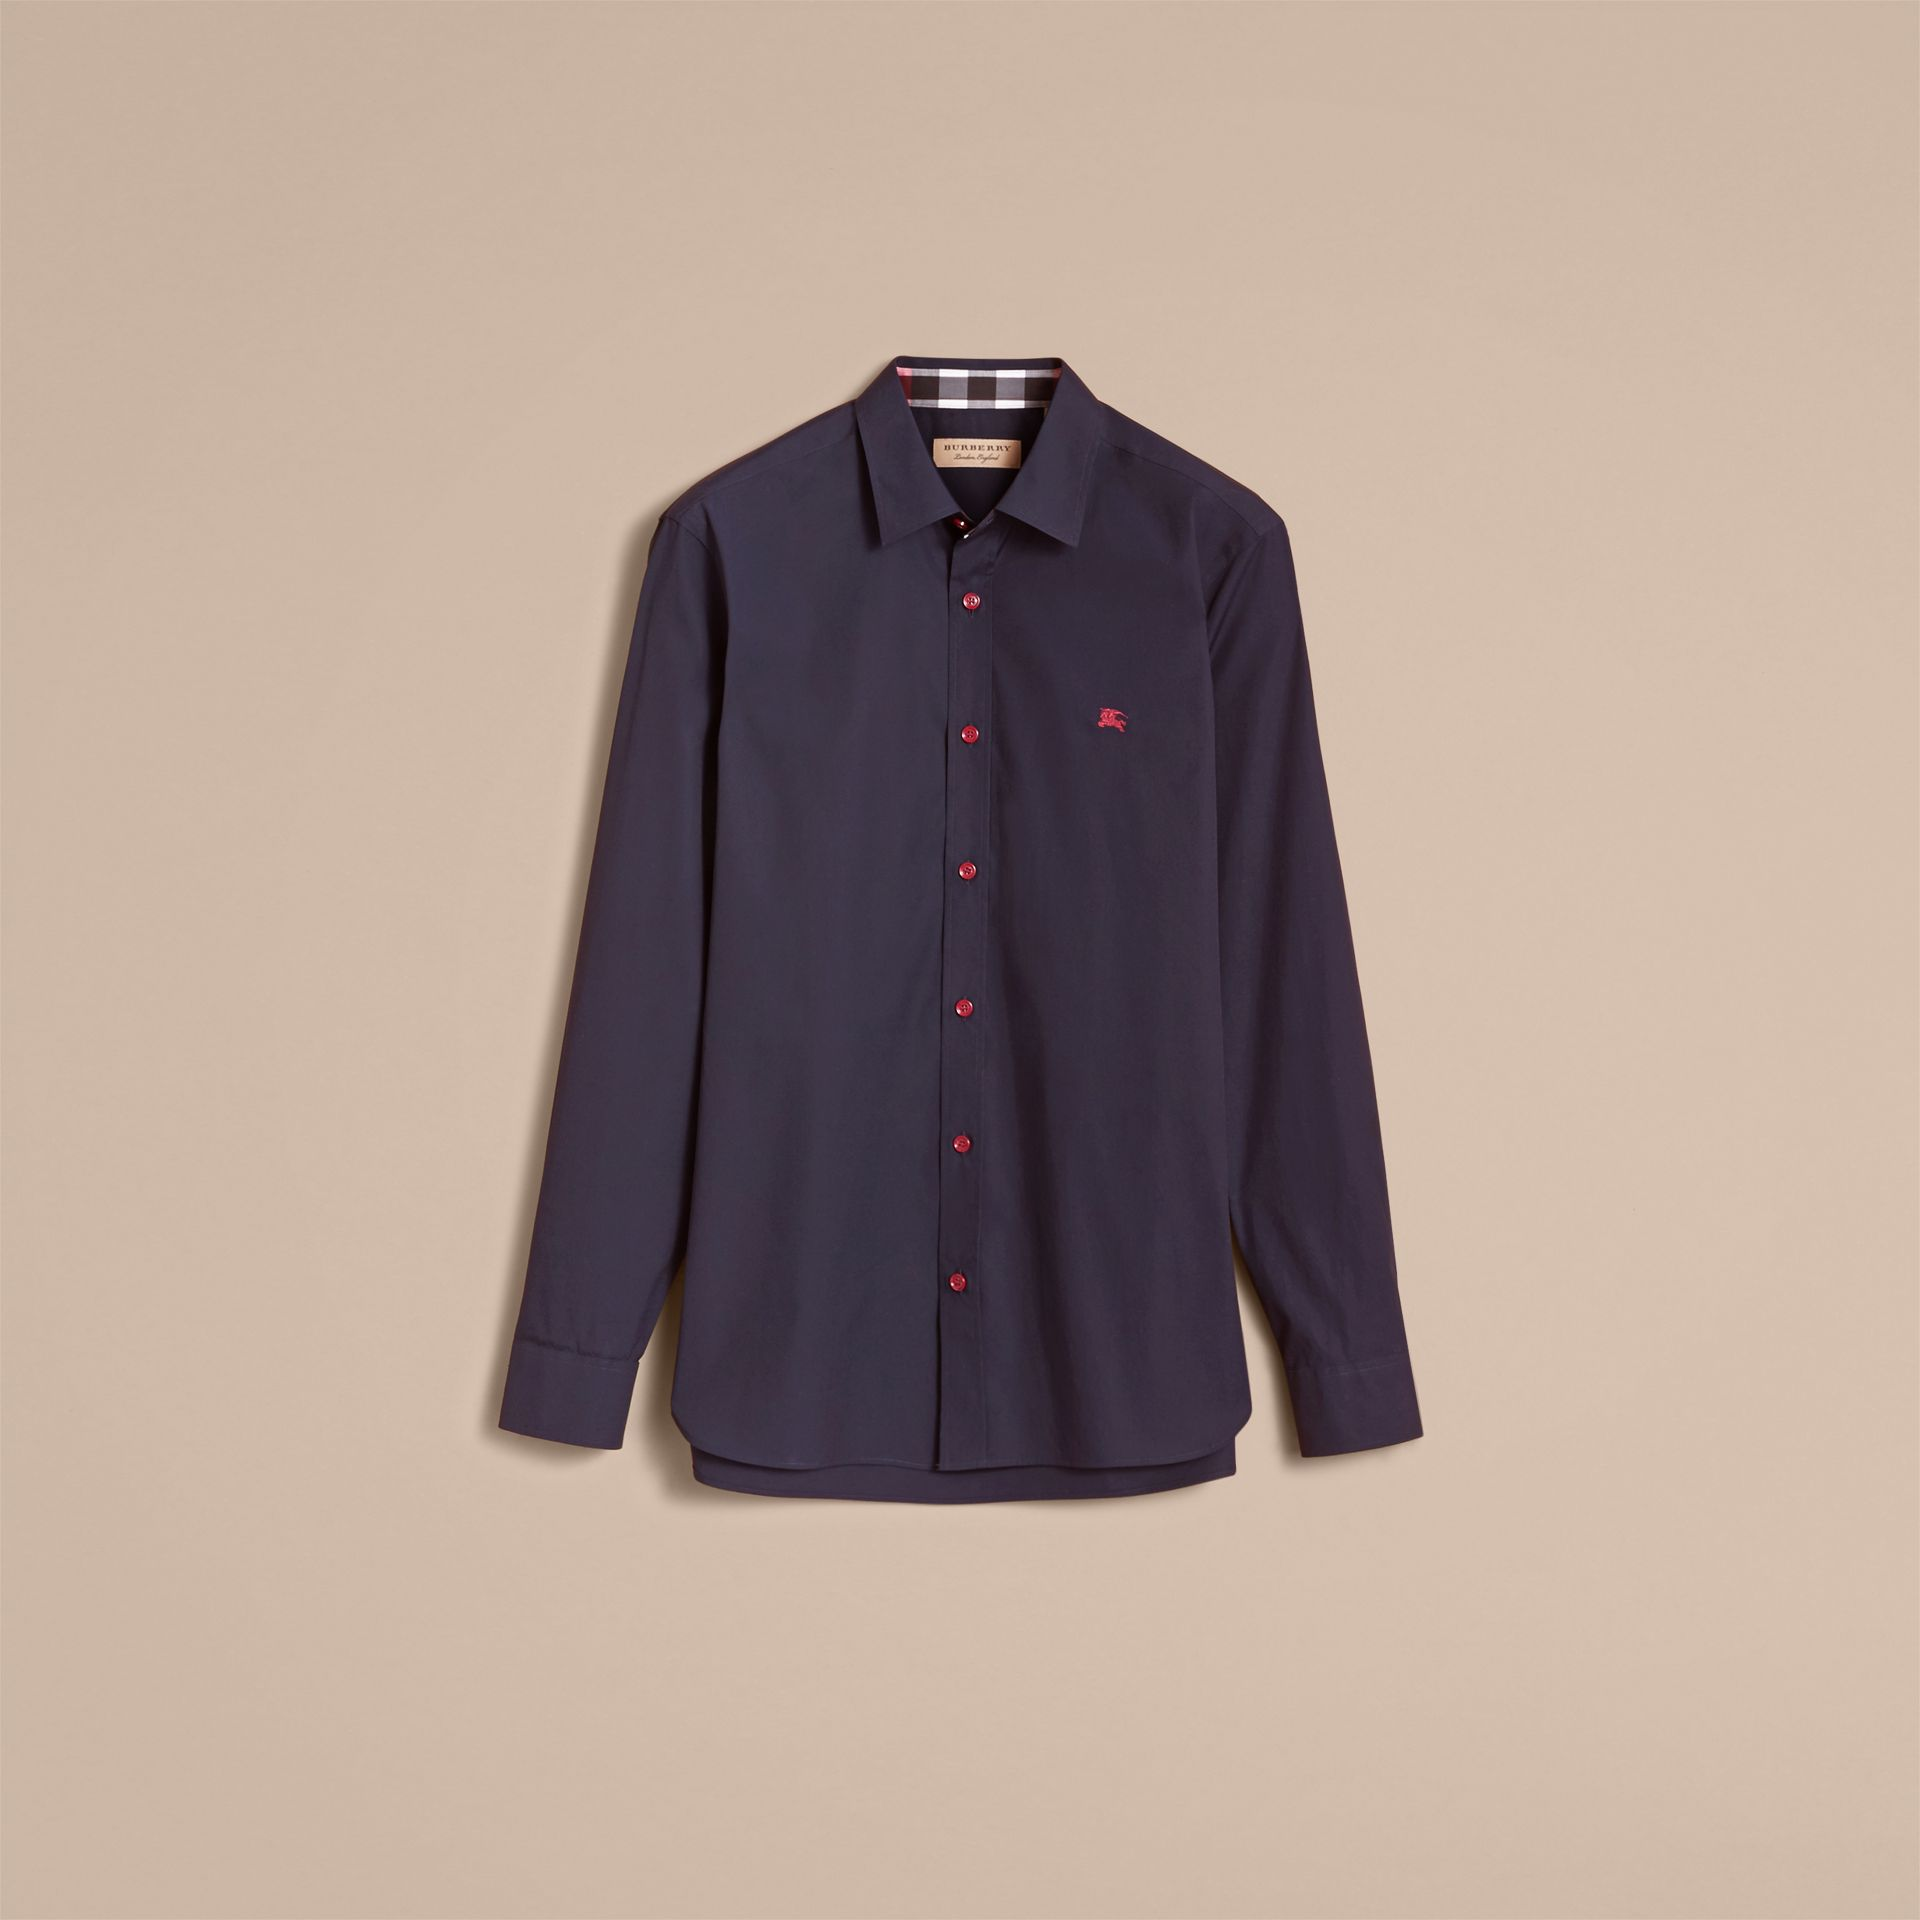 Resin Button Cotton Poplin Shirt in Navy - Men | Burberry Canada - gallery image 4